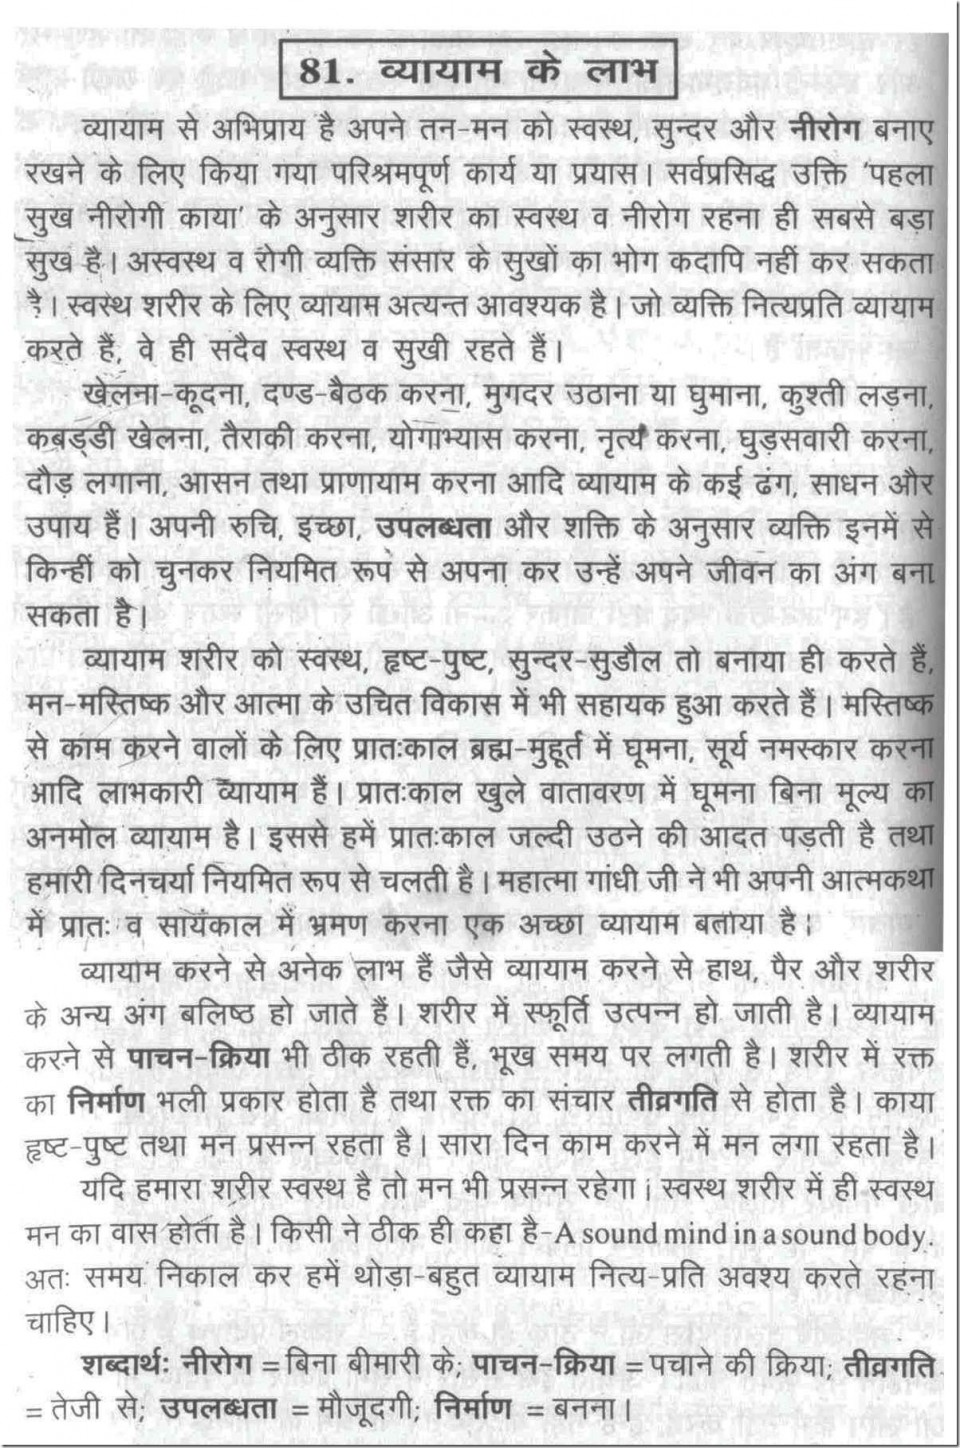 011 2563478896 Essay On Health And Fitness Through Food Good Habits In Hindi Exceptional Habit Eating Bad 960